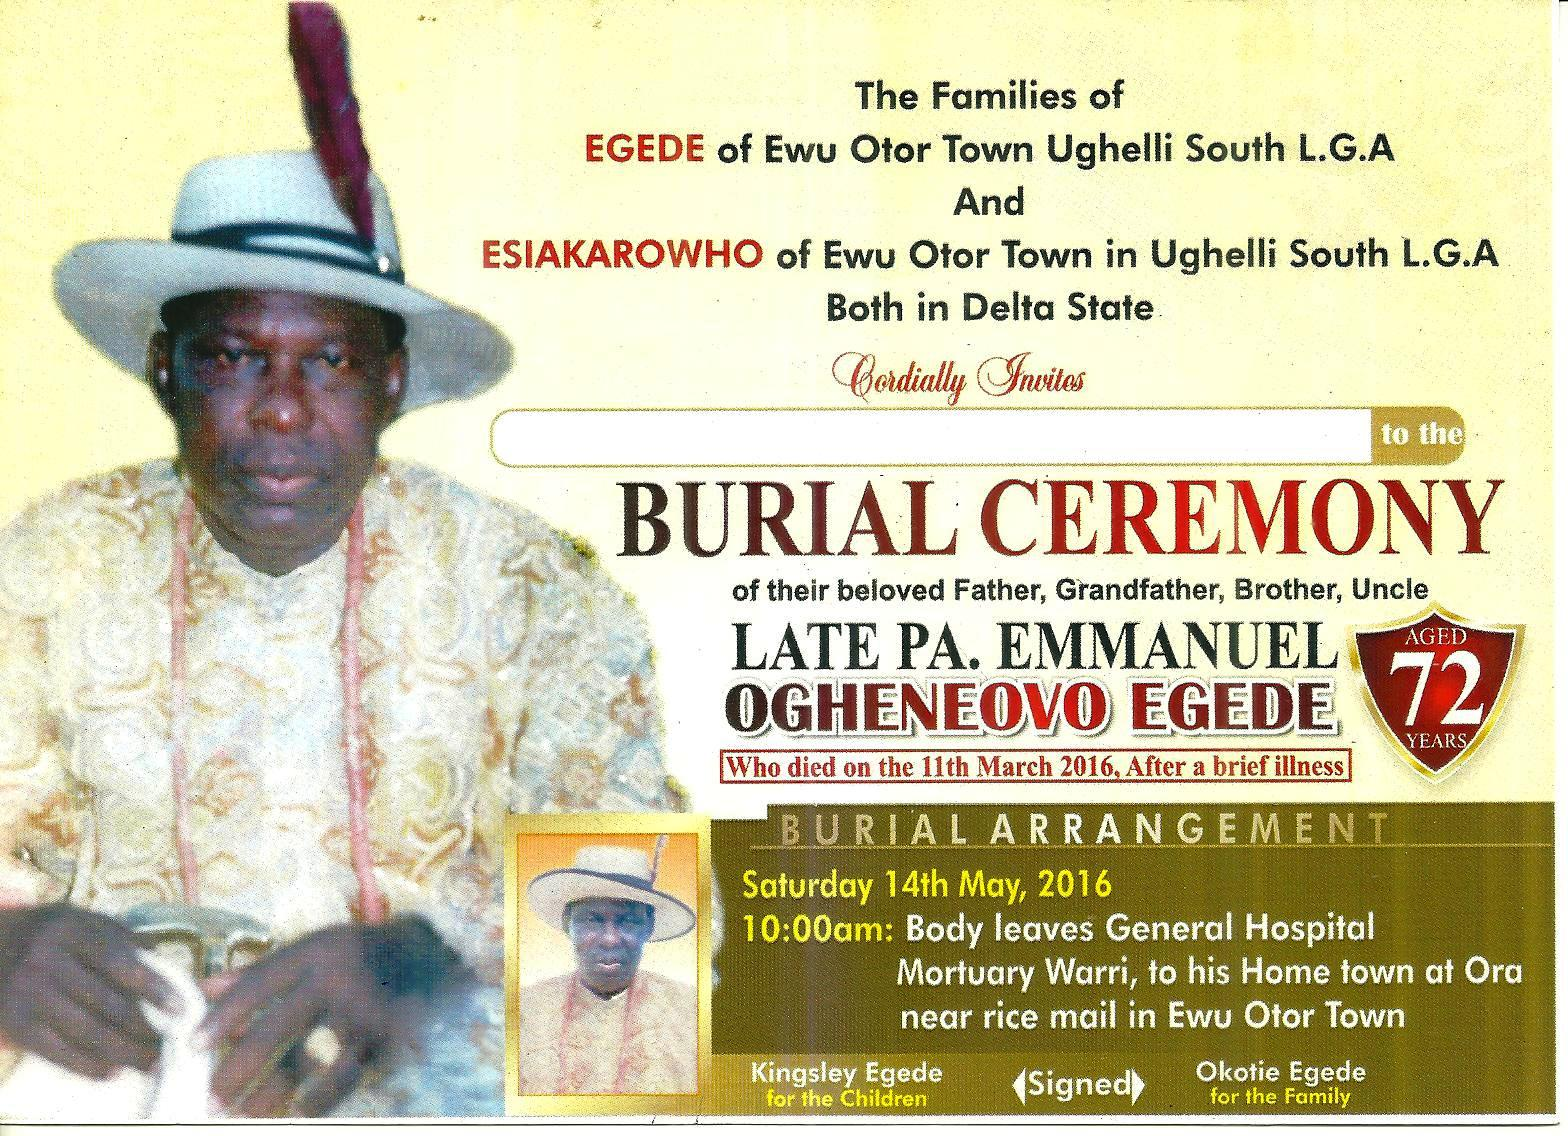 Abule Father Burial Ceremony Which Comes Up On The 14th May, 2016 @ HIs Home  Invitation For Funeral Ceremony